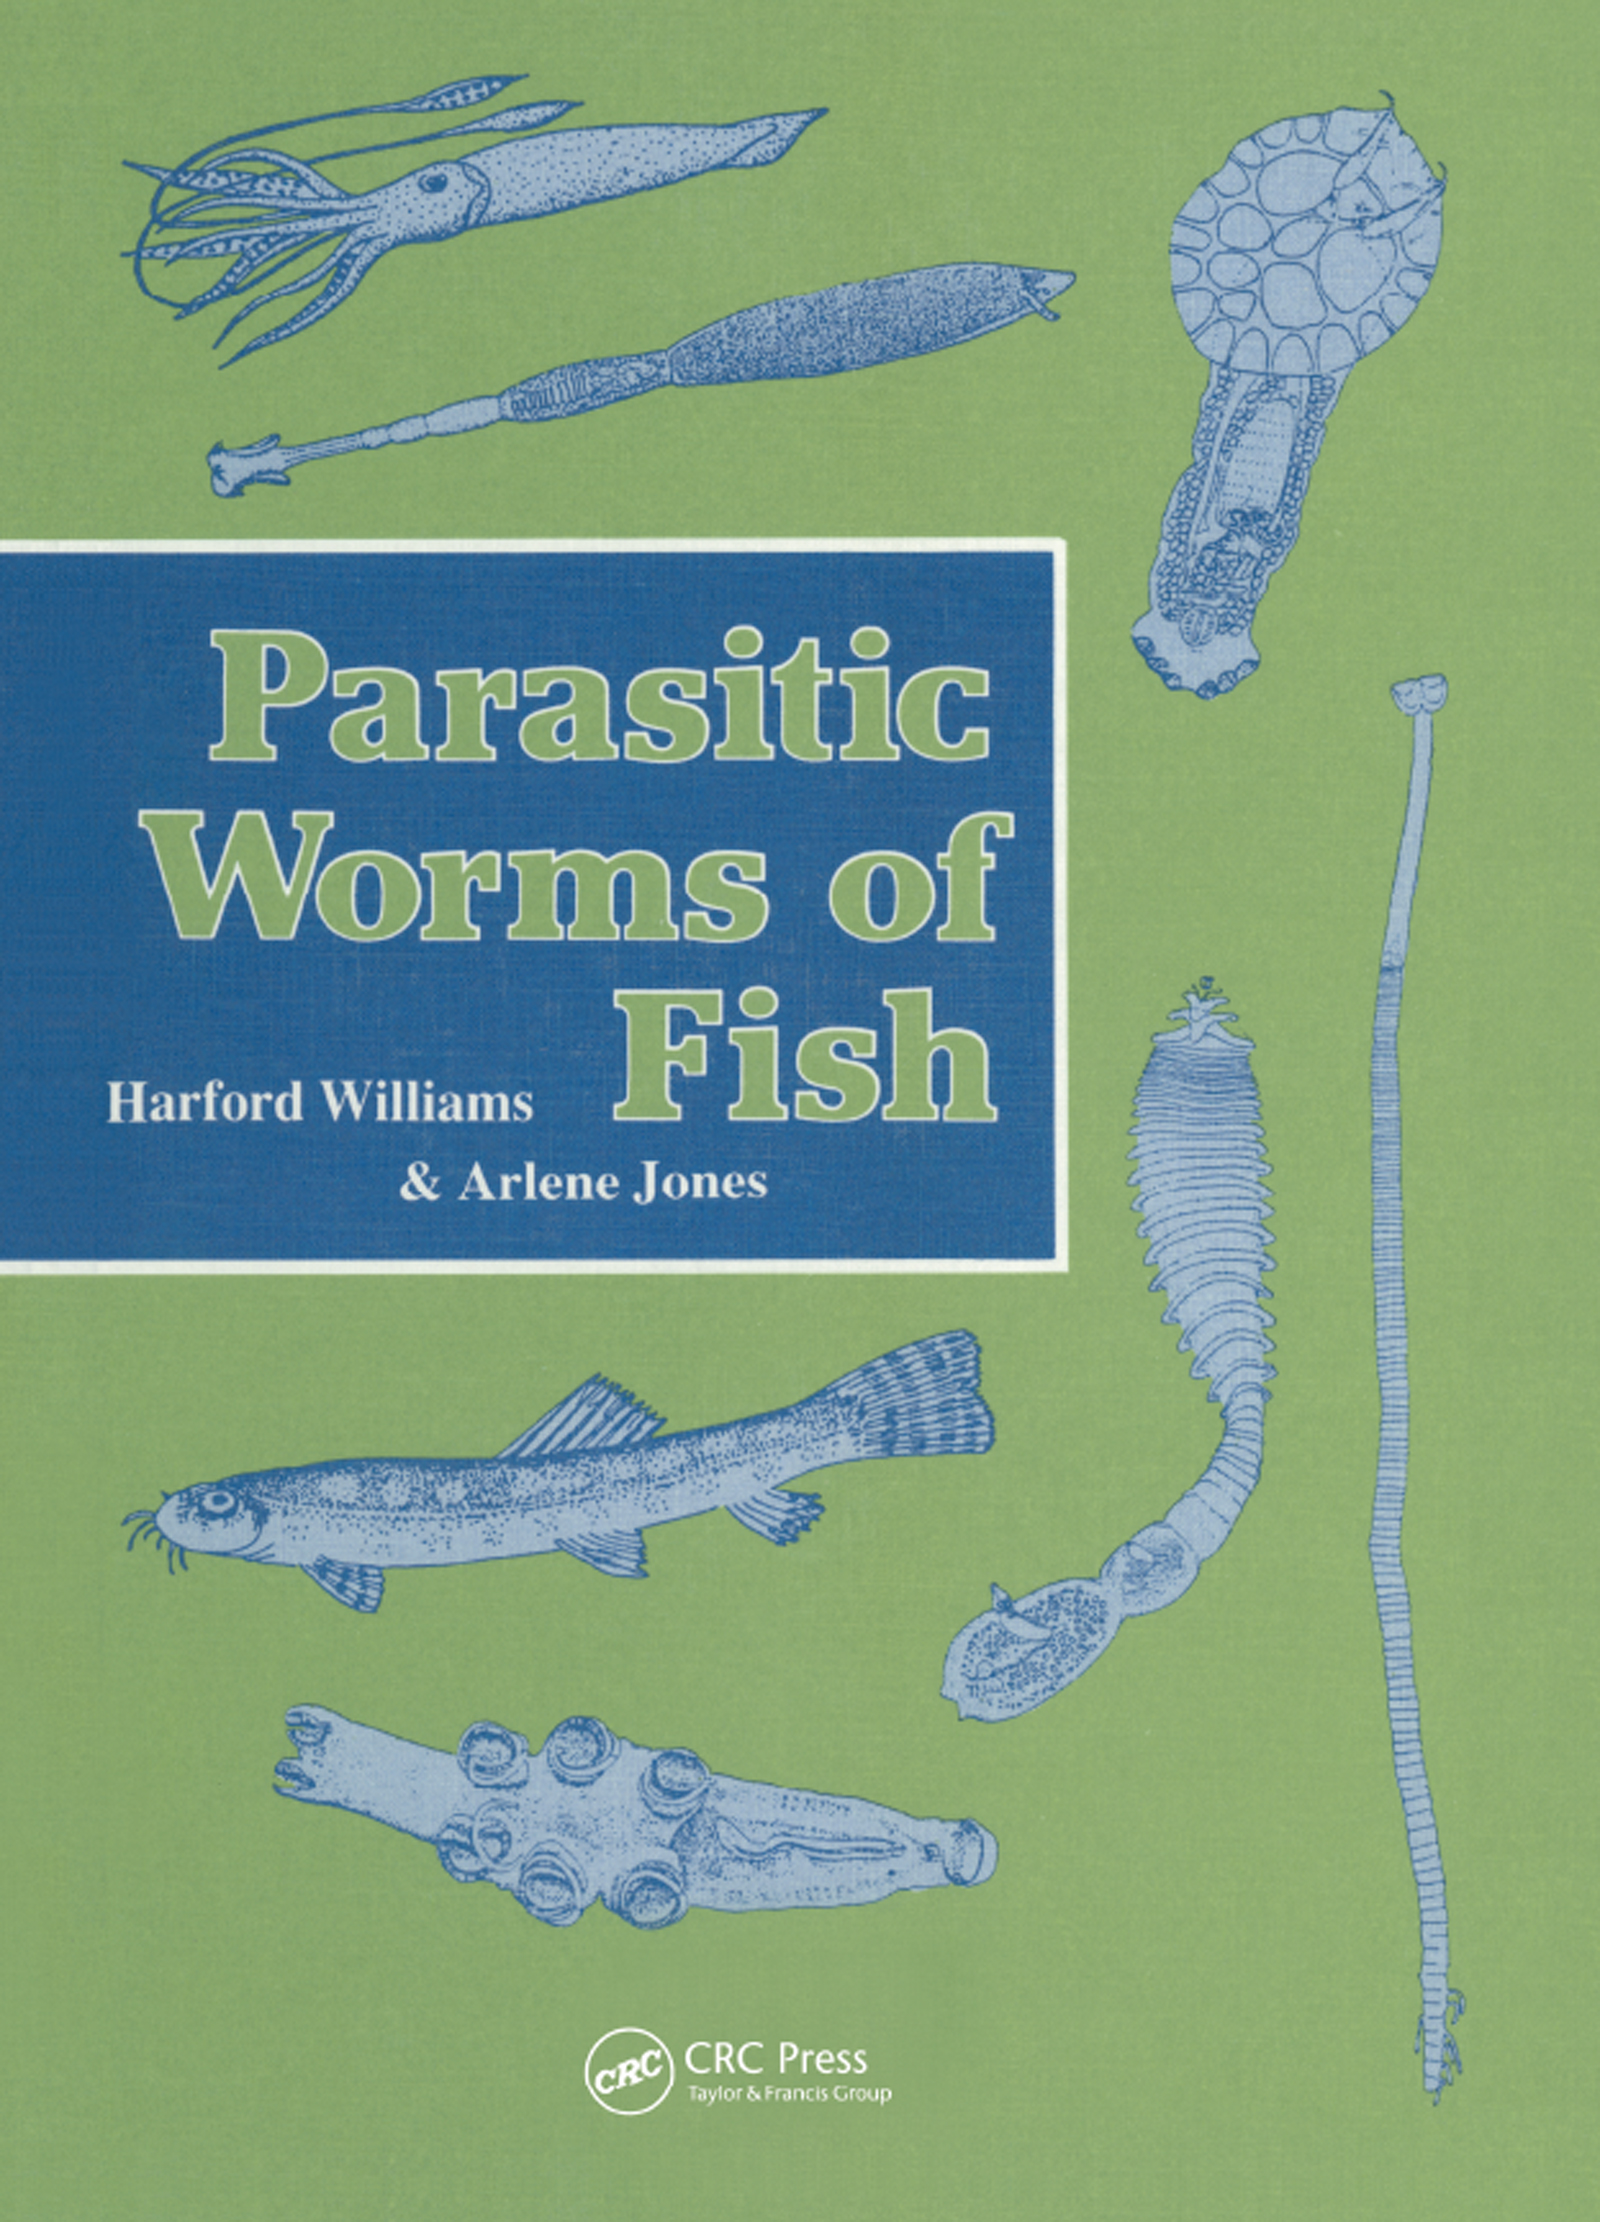 Parasitic Worms Of Fish